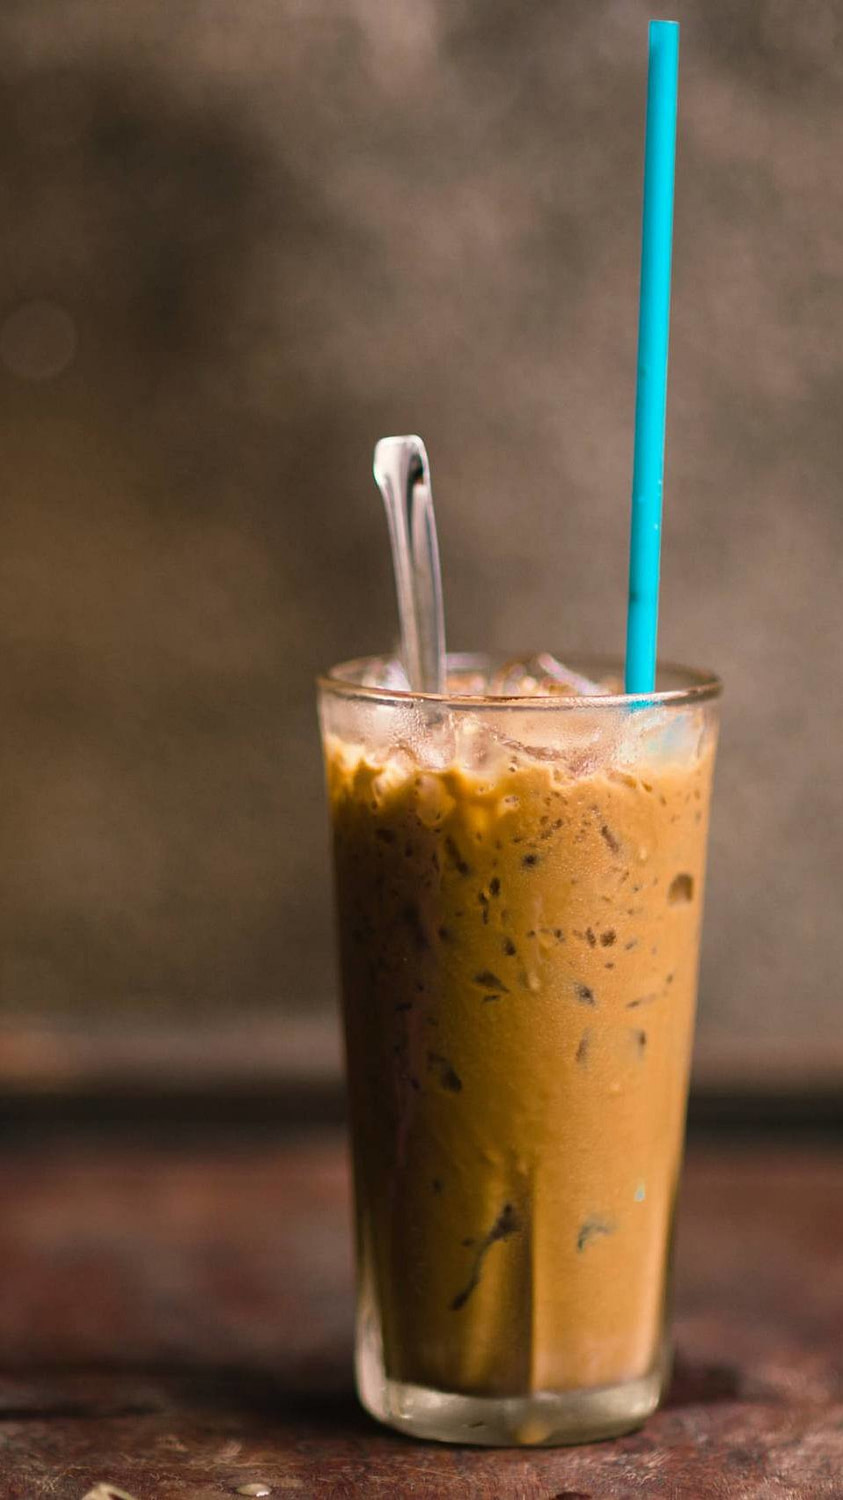 A still photo of Vietnamese Coffee from a coffee shop in Hanoi